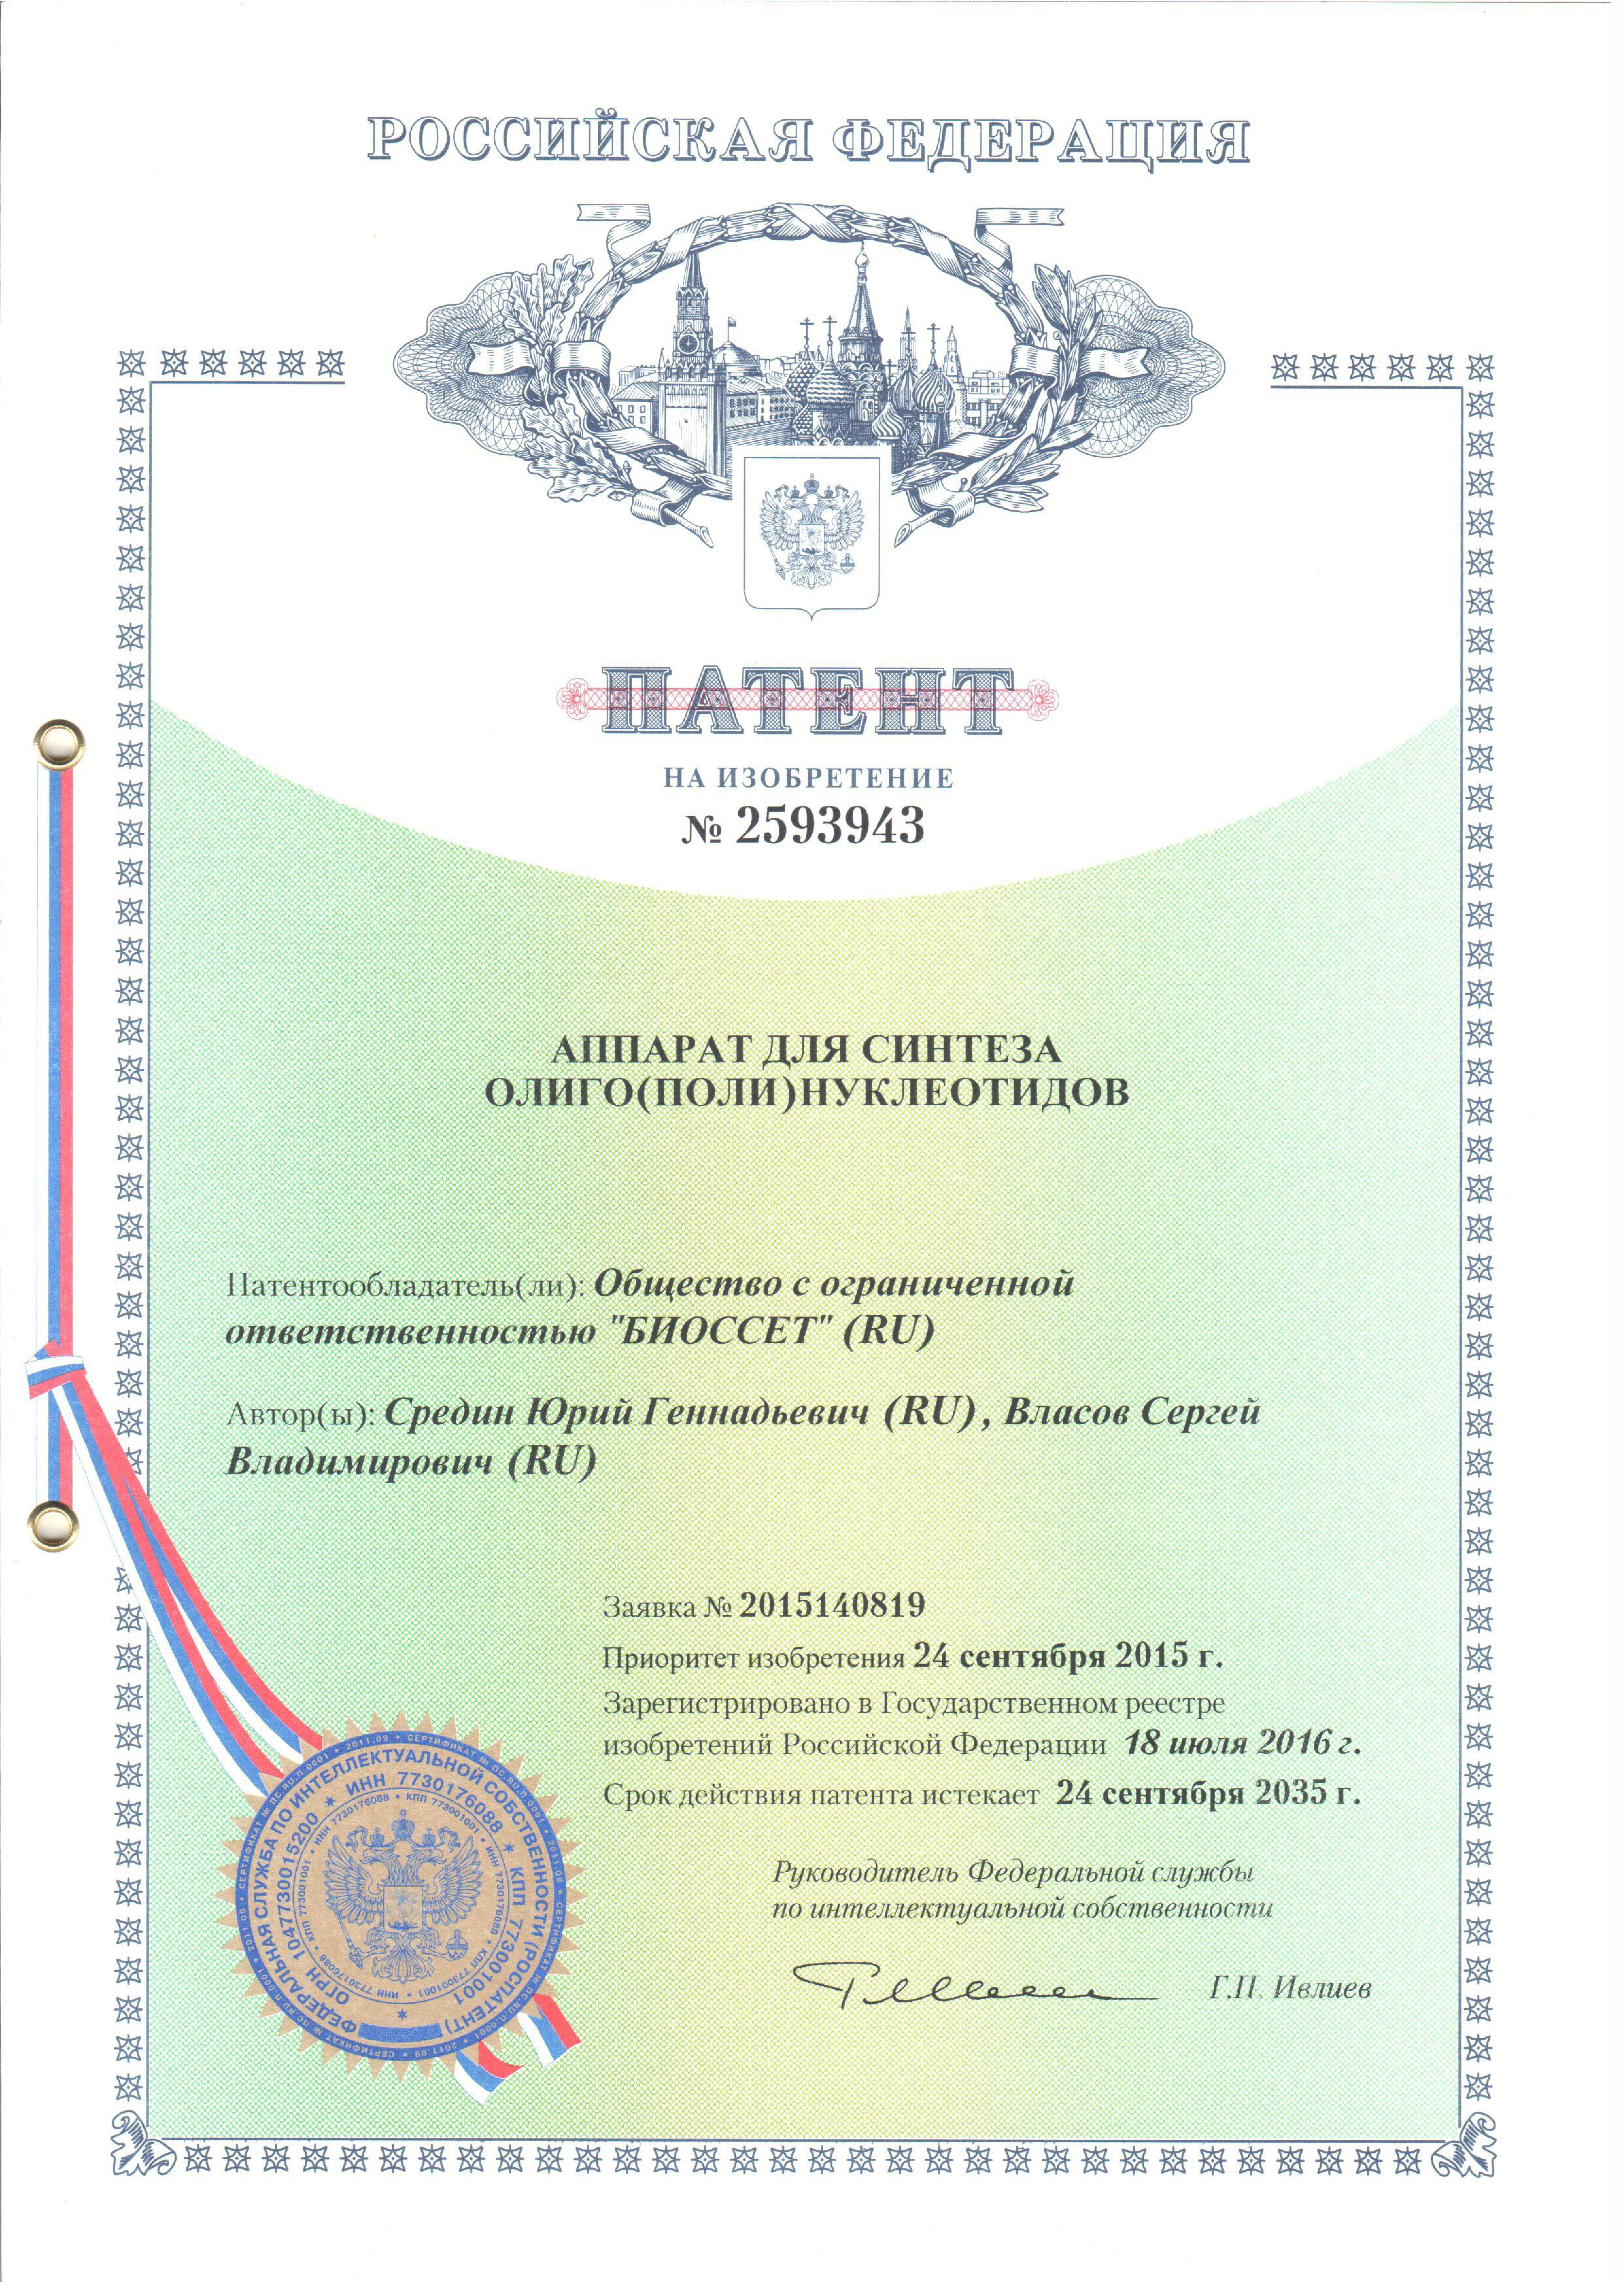 Where and how in Russia to obtain a patent for an invention